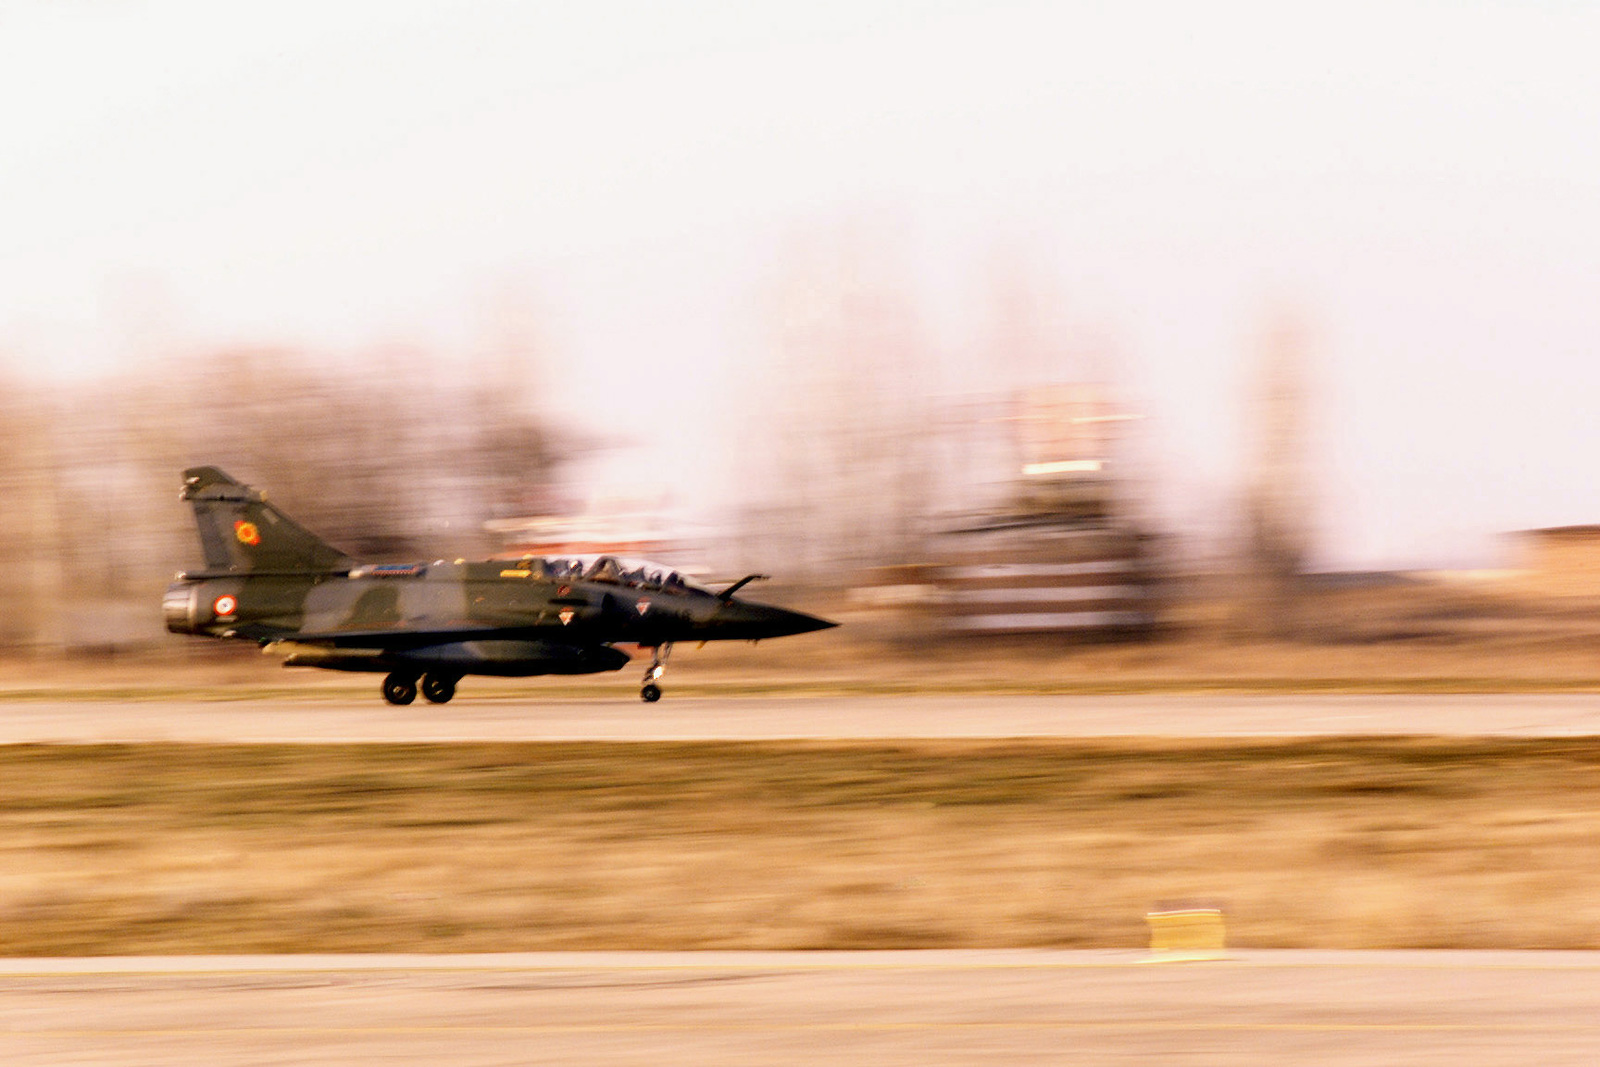 A French Air Force Mirage 2000, Escadre de Chasse (EC) (Fighter Wing